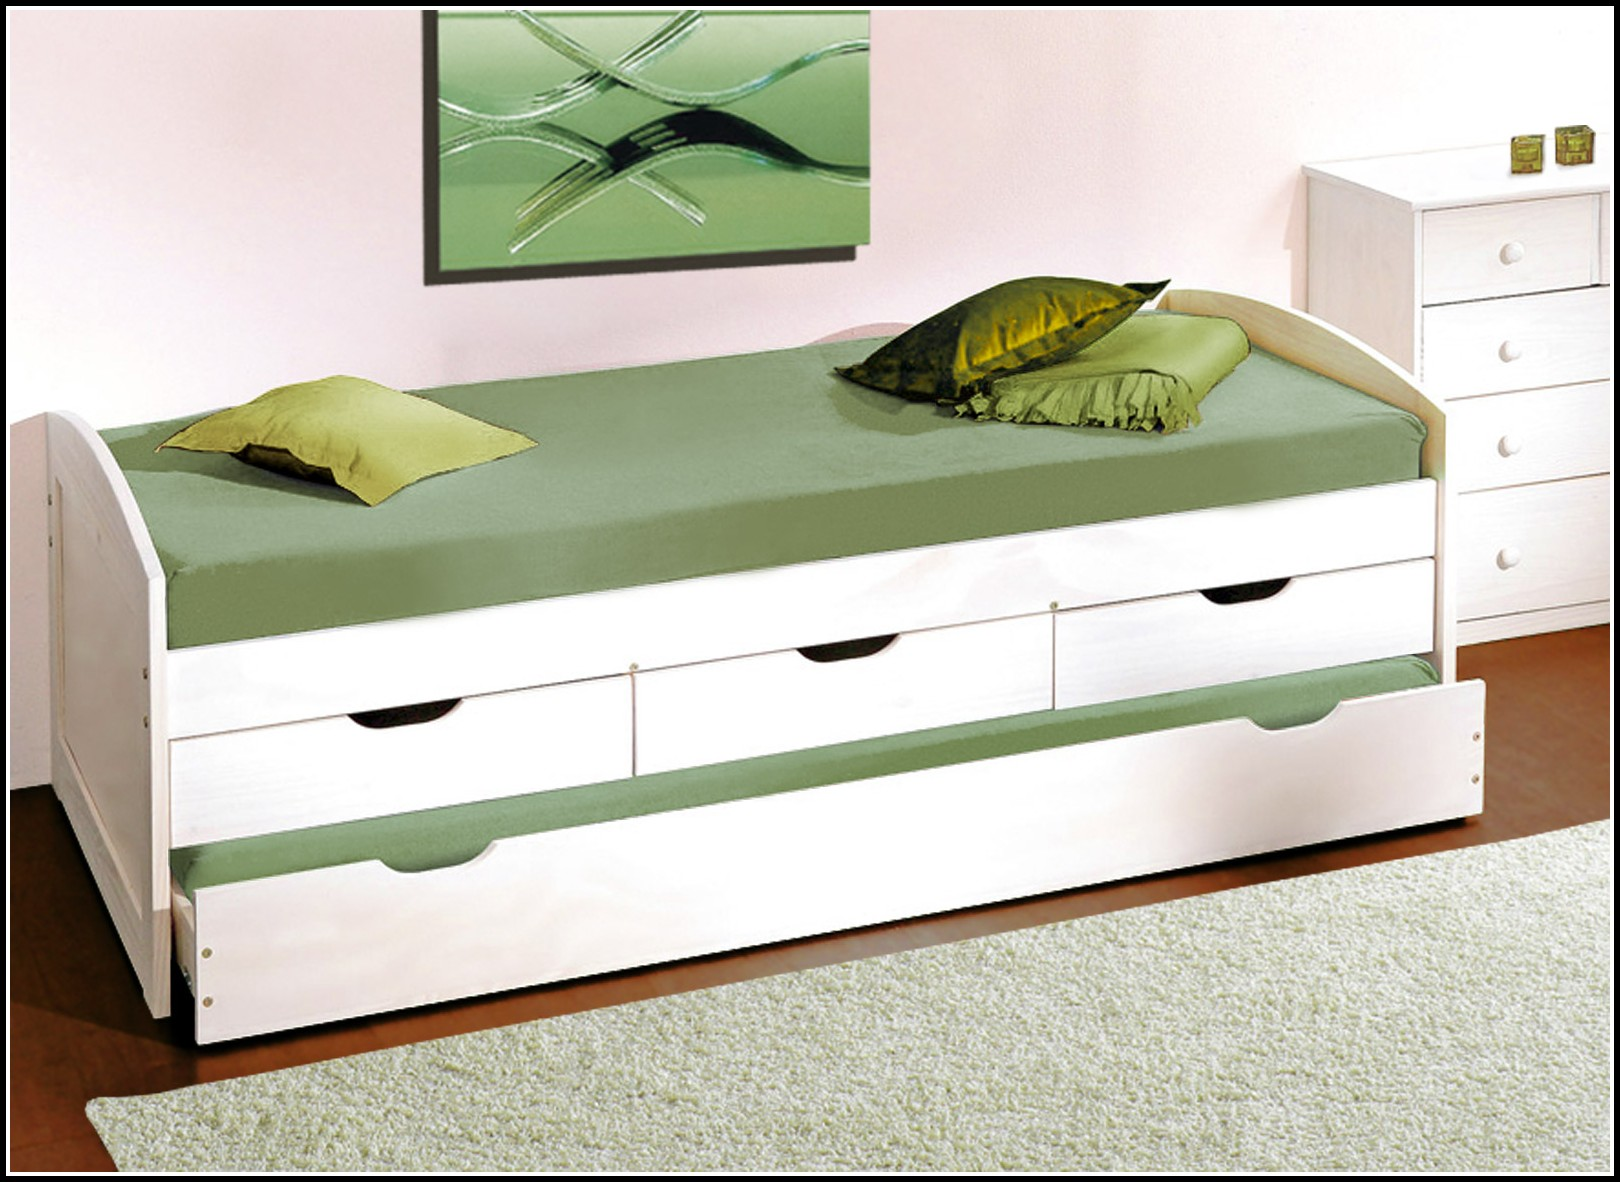 Bett mit schubladen 100x200 download page beste for Bett 100x200 mit schubladen